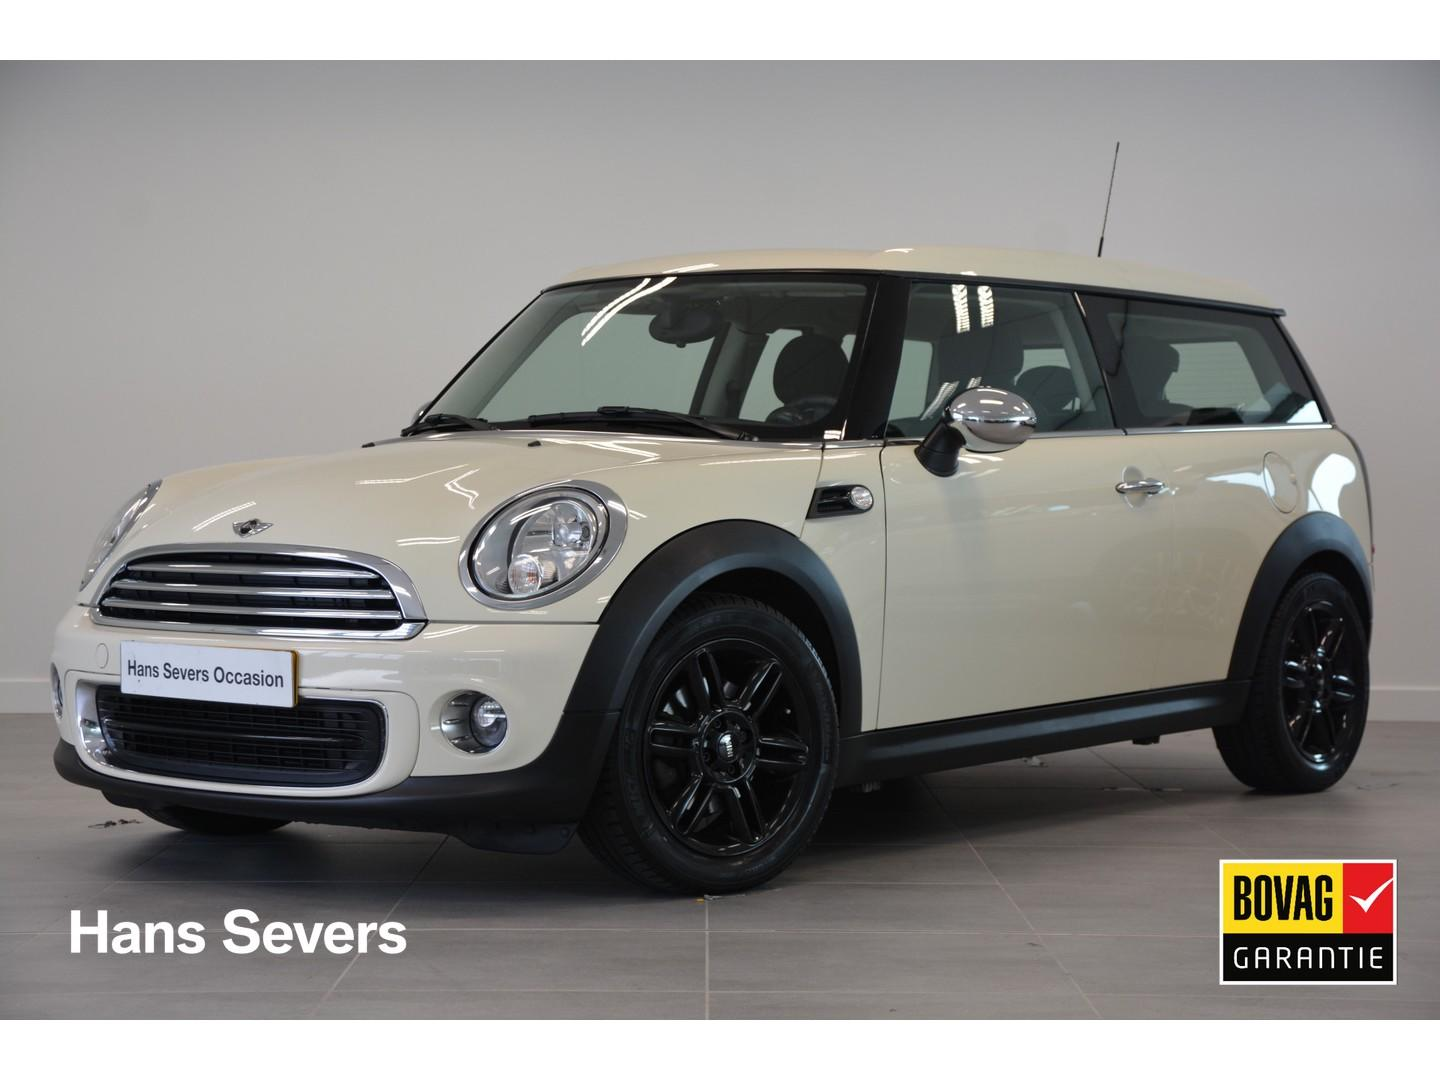 Mini Clubman 1.6 one holland street